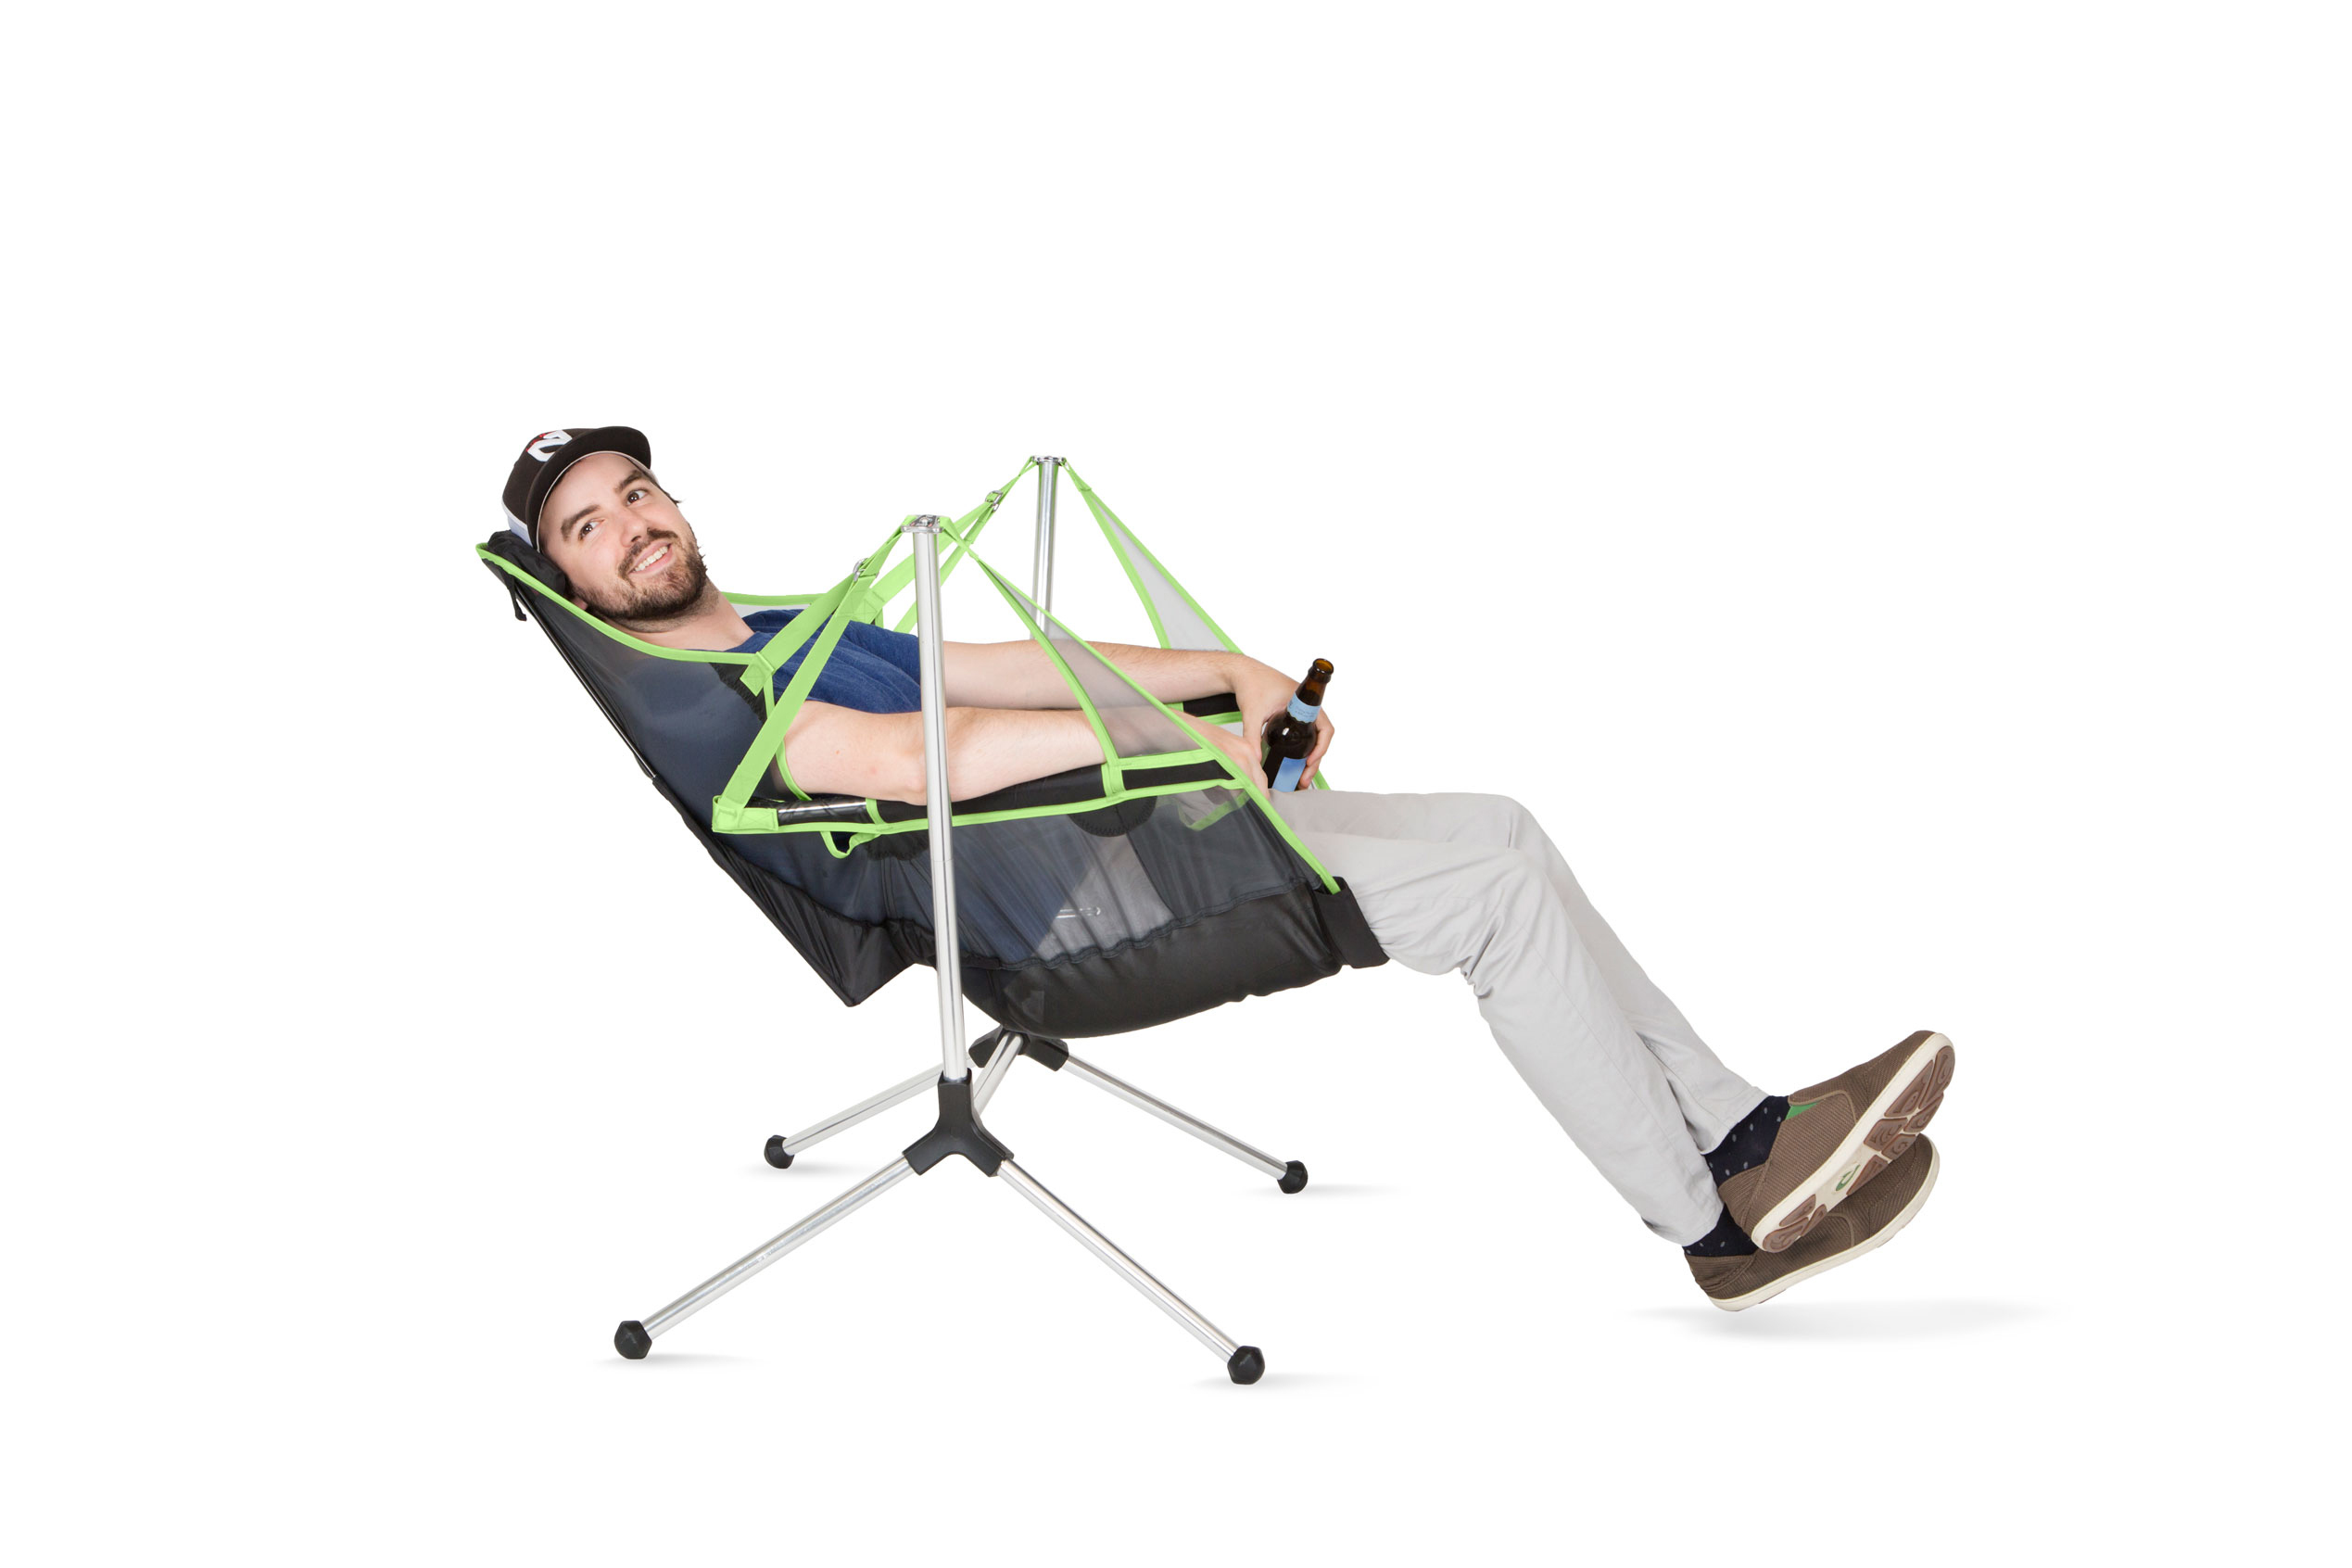 The First Ever Swinging And Reclining Camp Chair Hits The